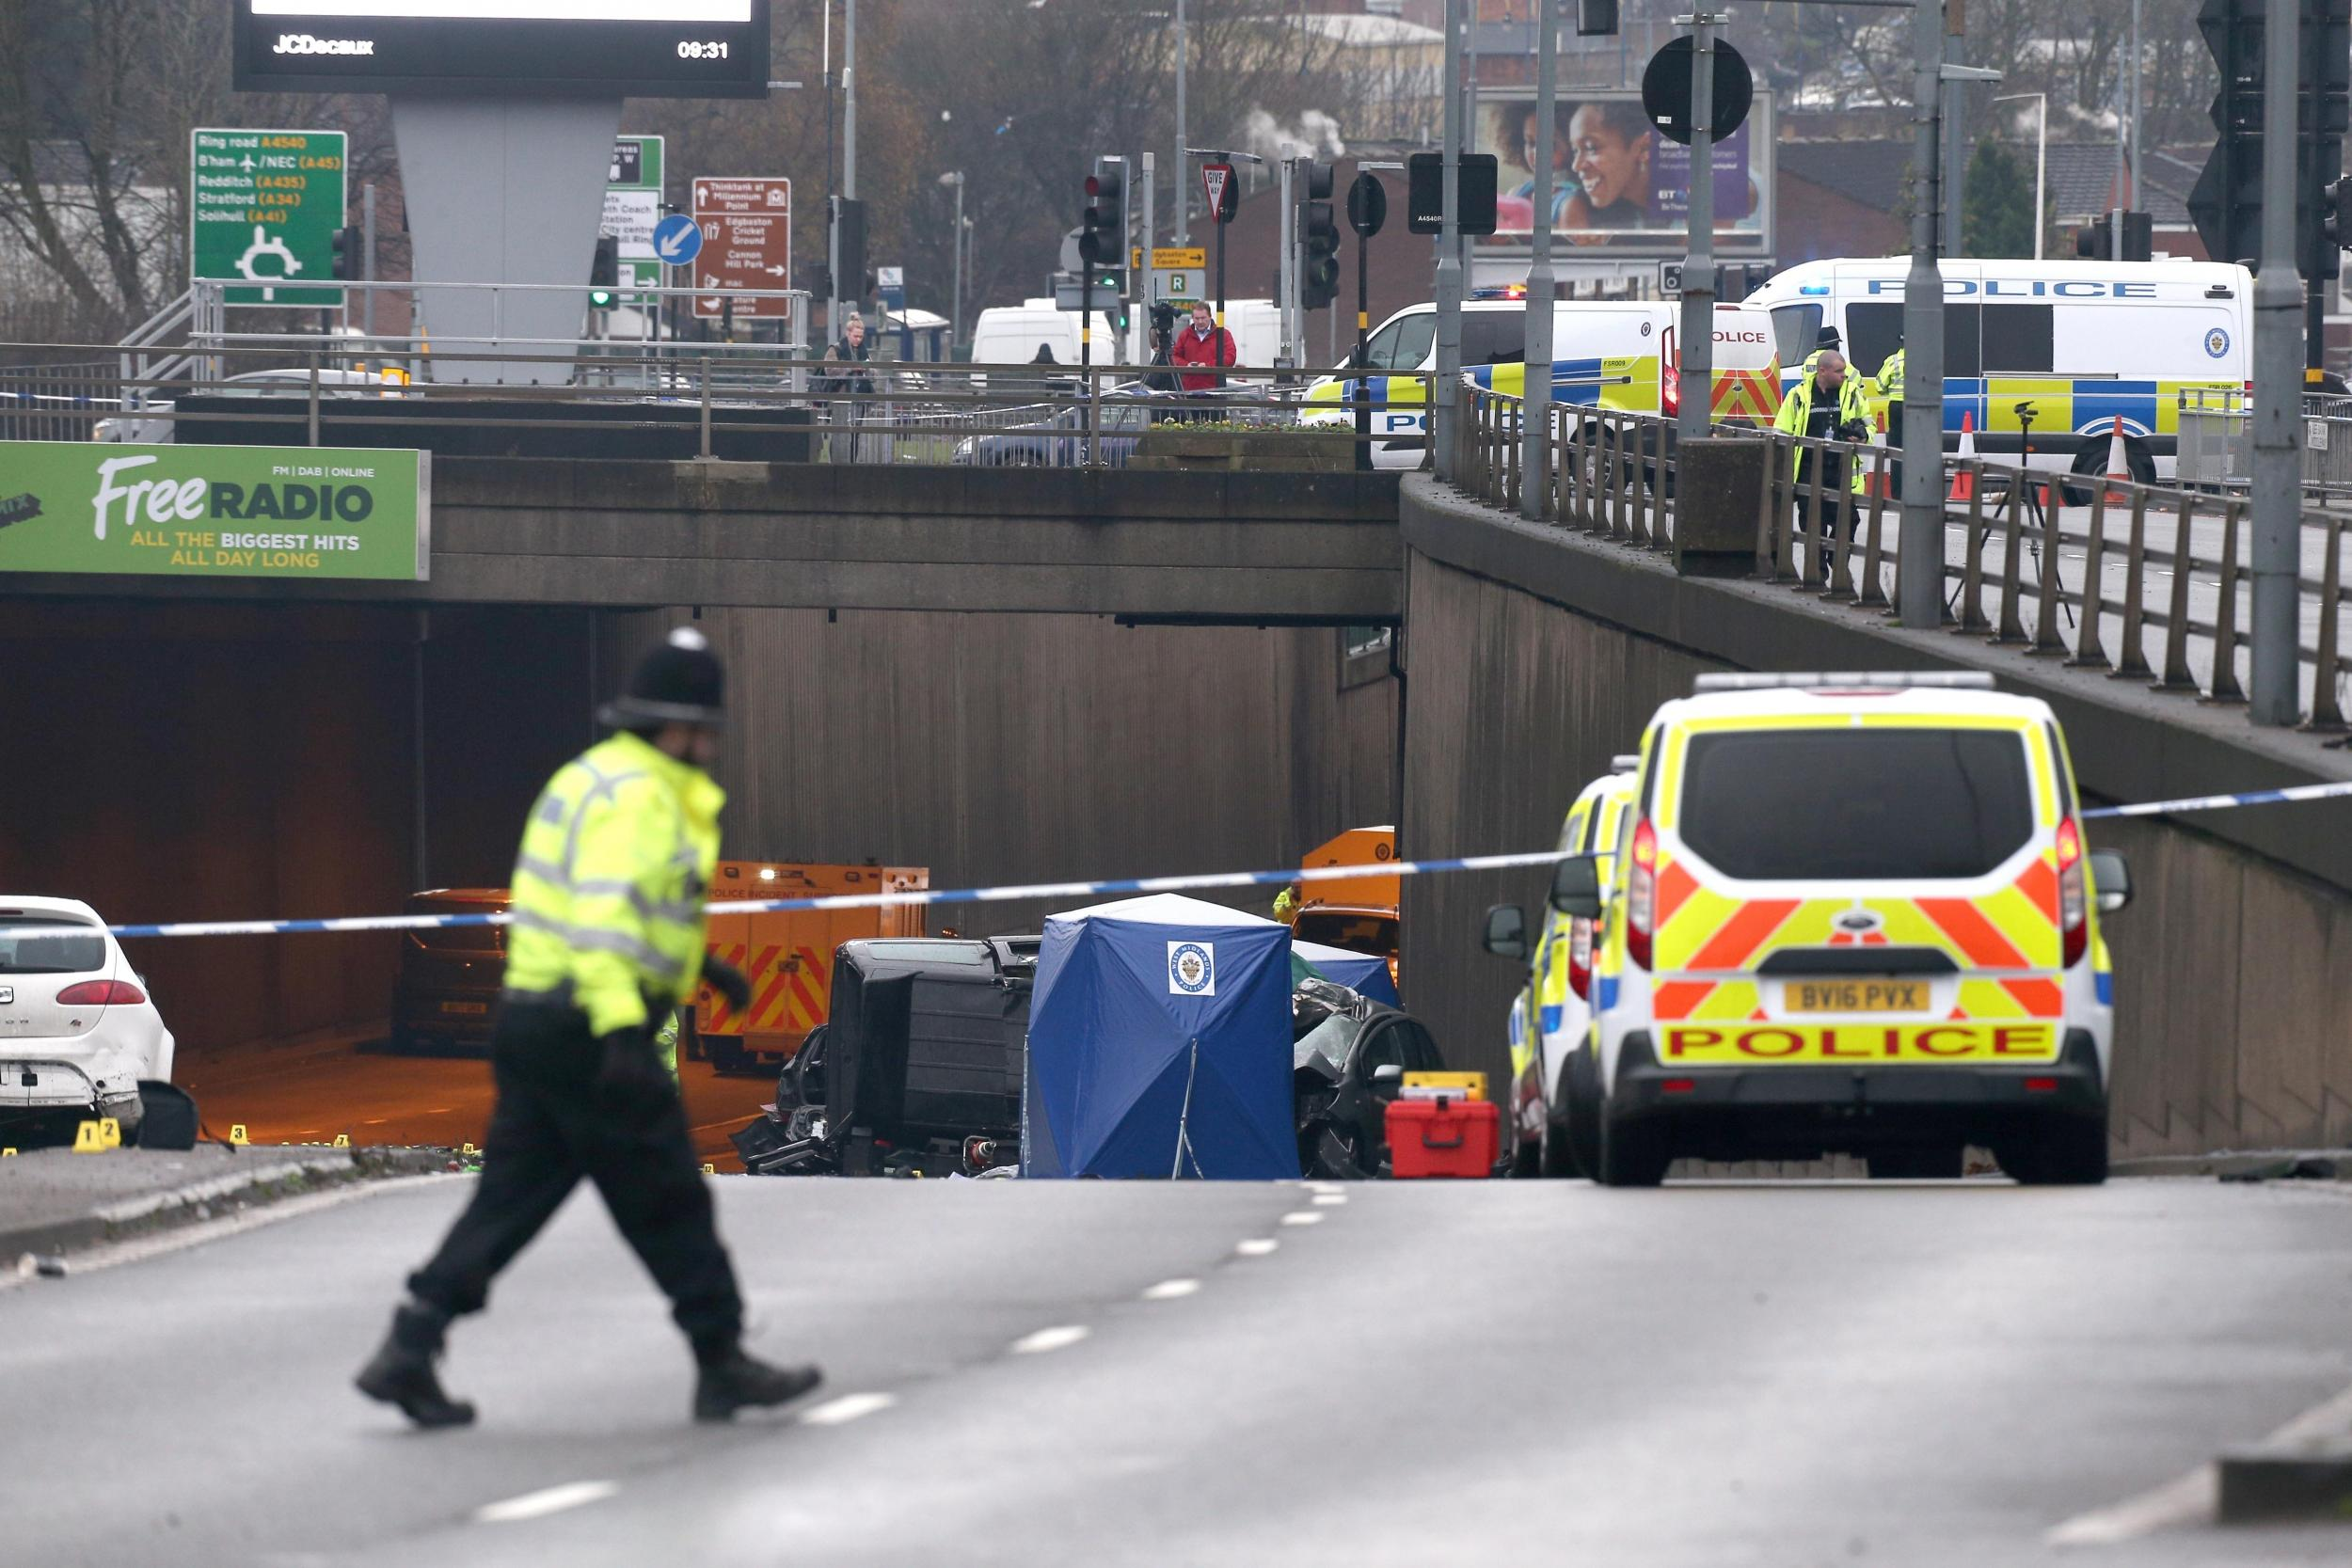 birmingham car crash: what we know about collision that killed six